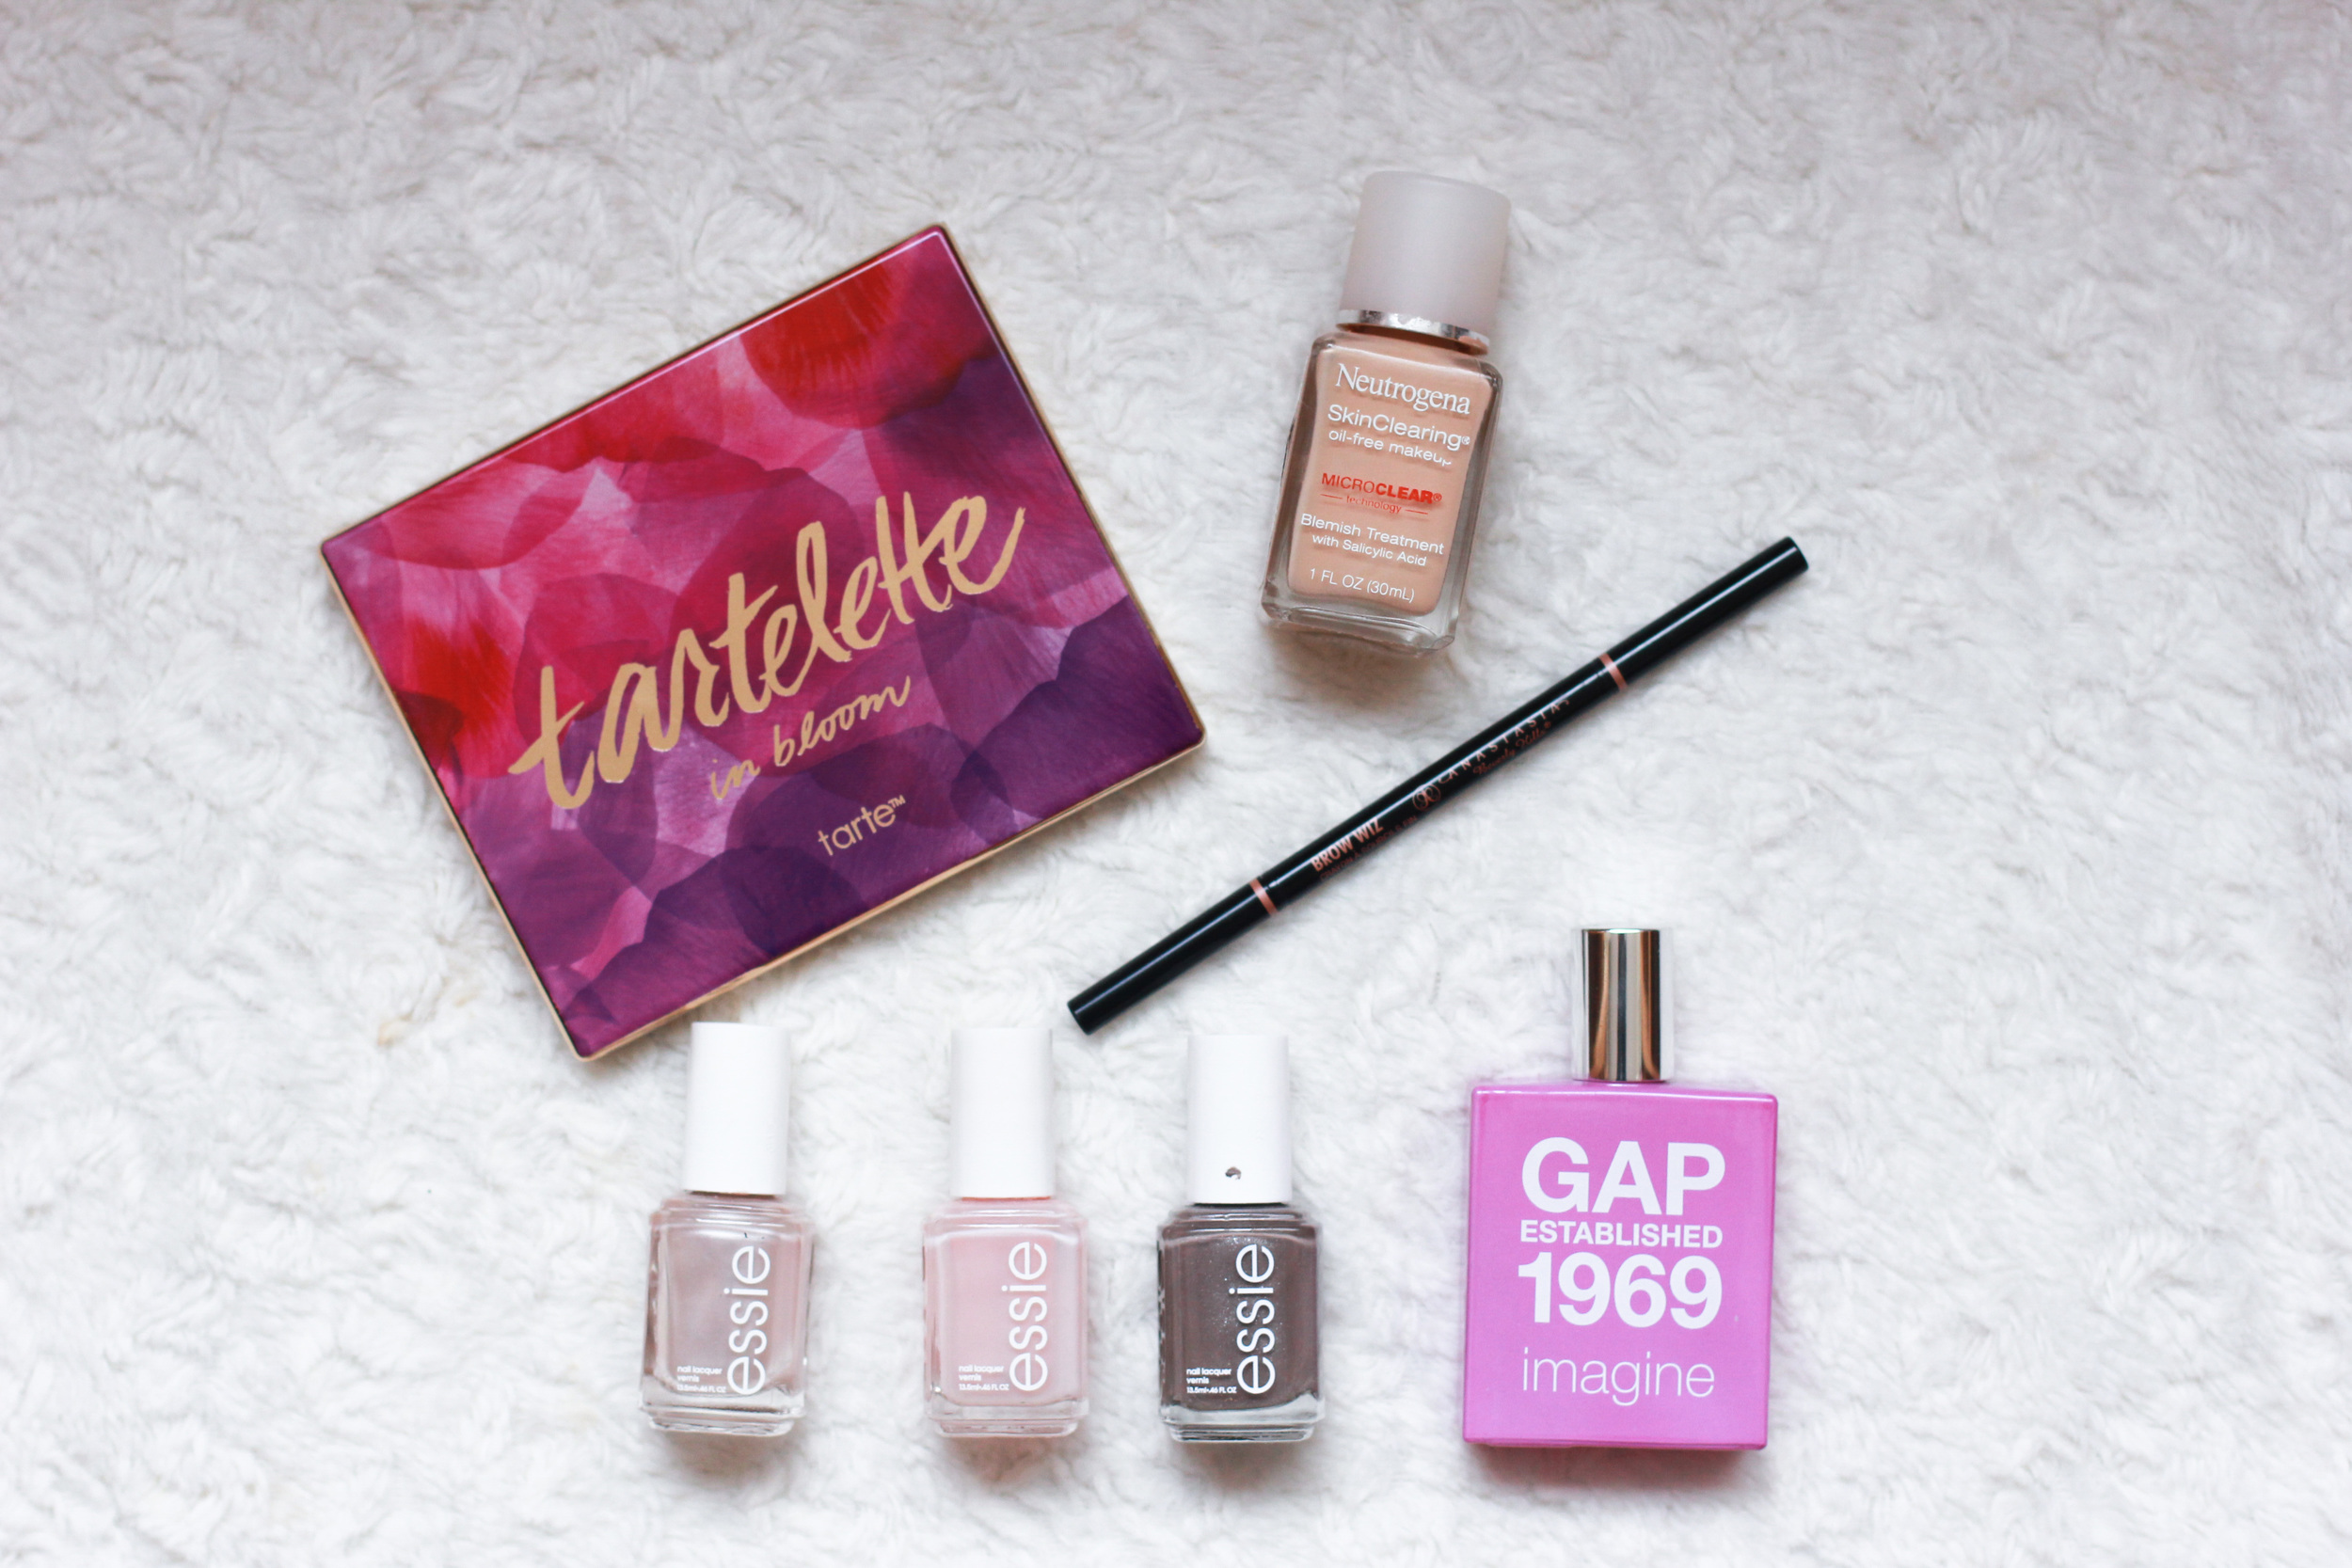 Tartelette in bloom eye shadow palette, Neutrogena skin clearing foundation, anastasia beverly hills brow wiz in taupe, Essie nail polish in imported bubbly, mochachino, and hi daddy, gap imagine perfume